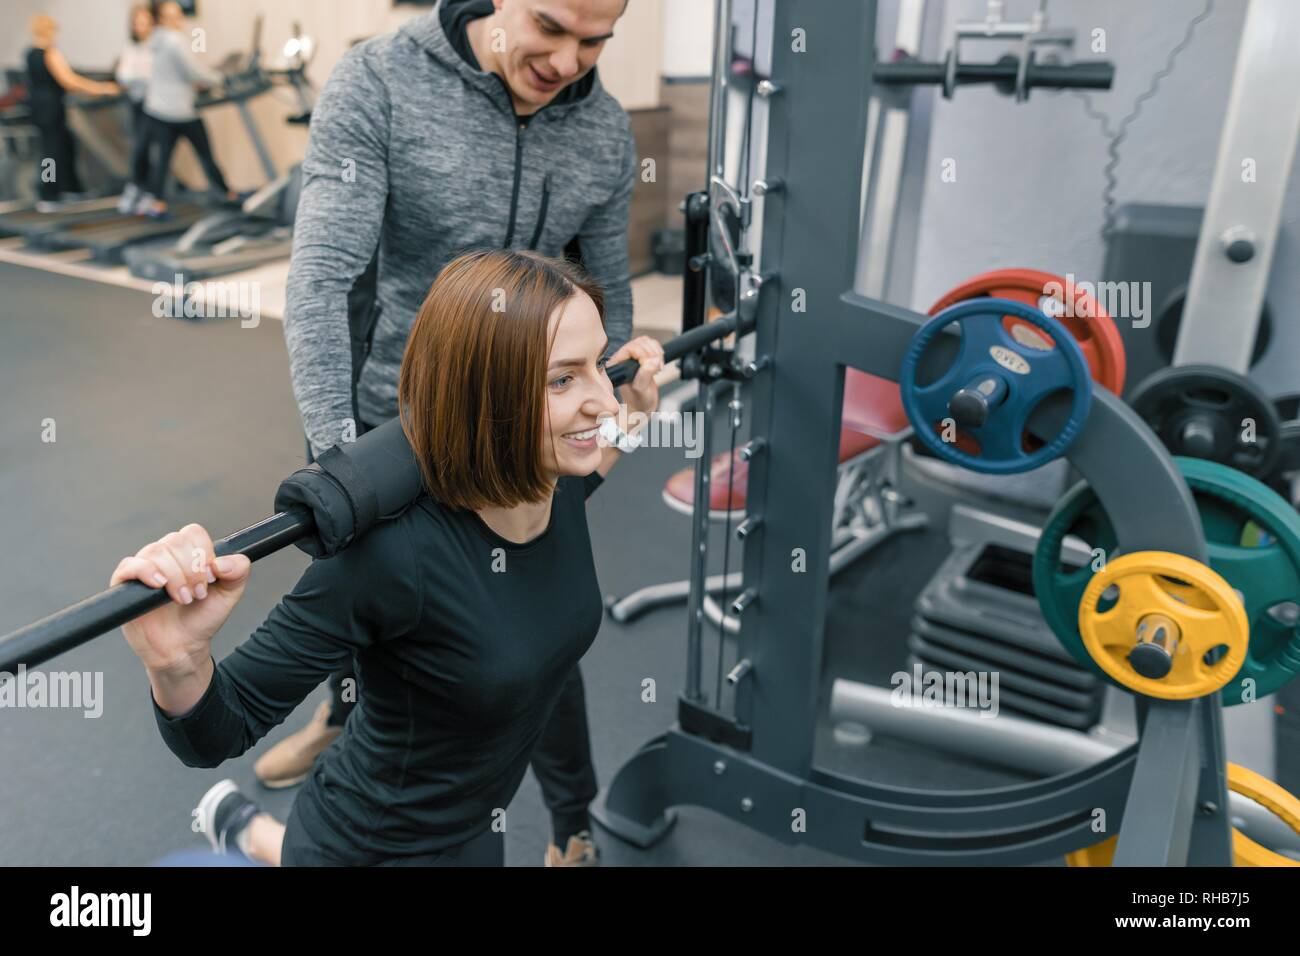 Female Trainer Gym Weight Lift Stock Photos  Female -6091